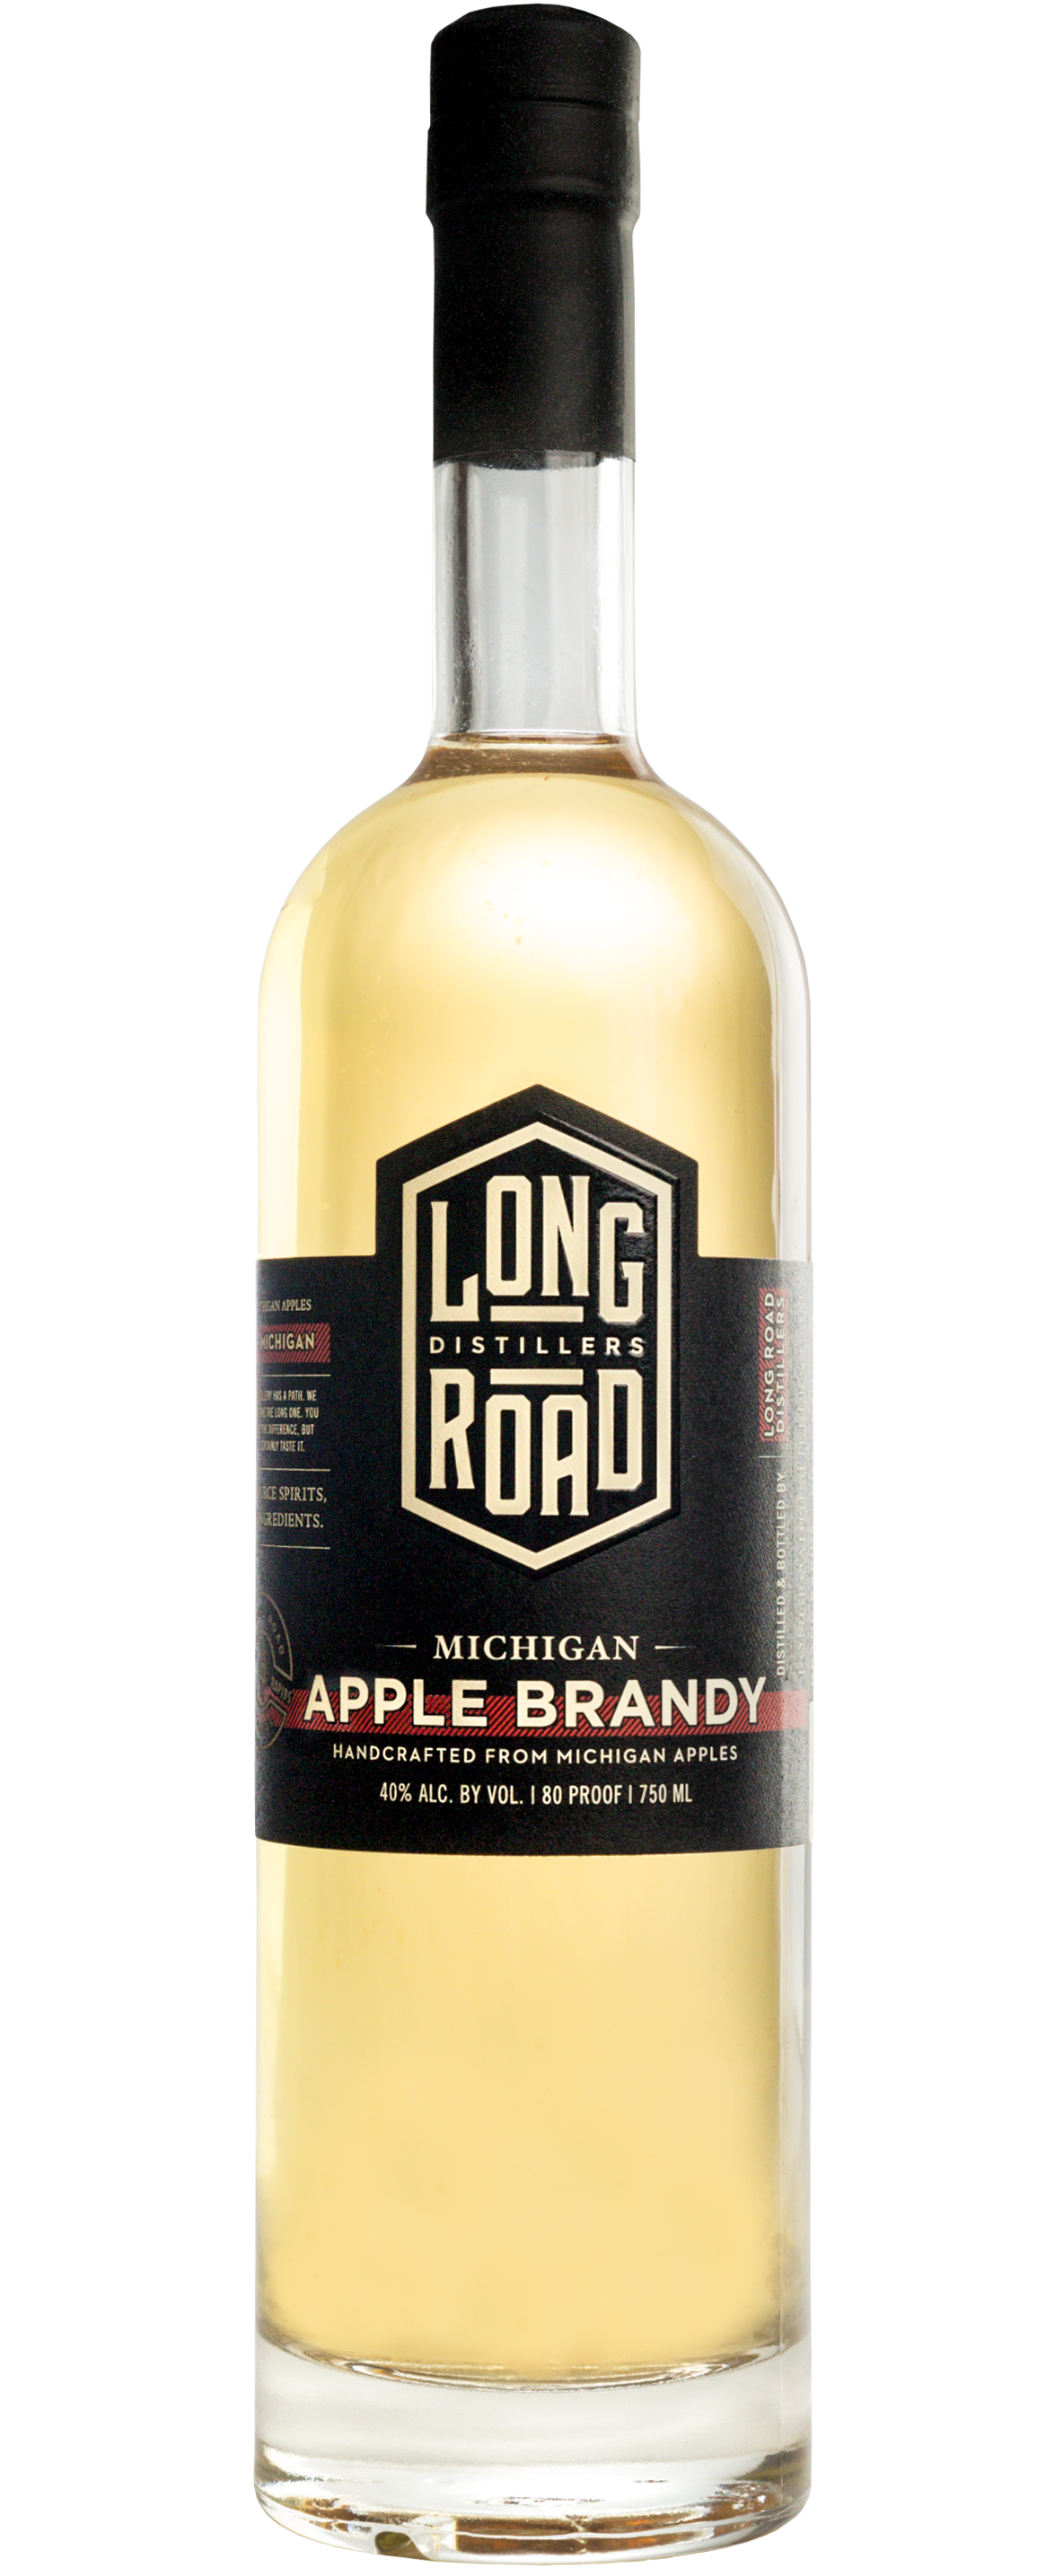 Michigan Apply Brandy Long Road Distillers